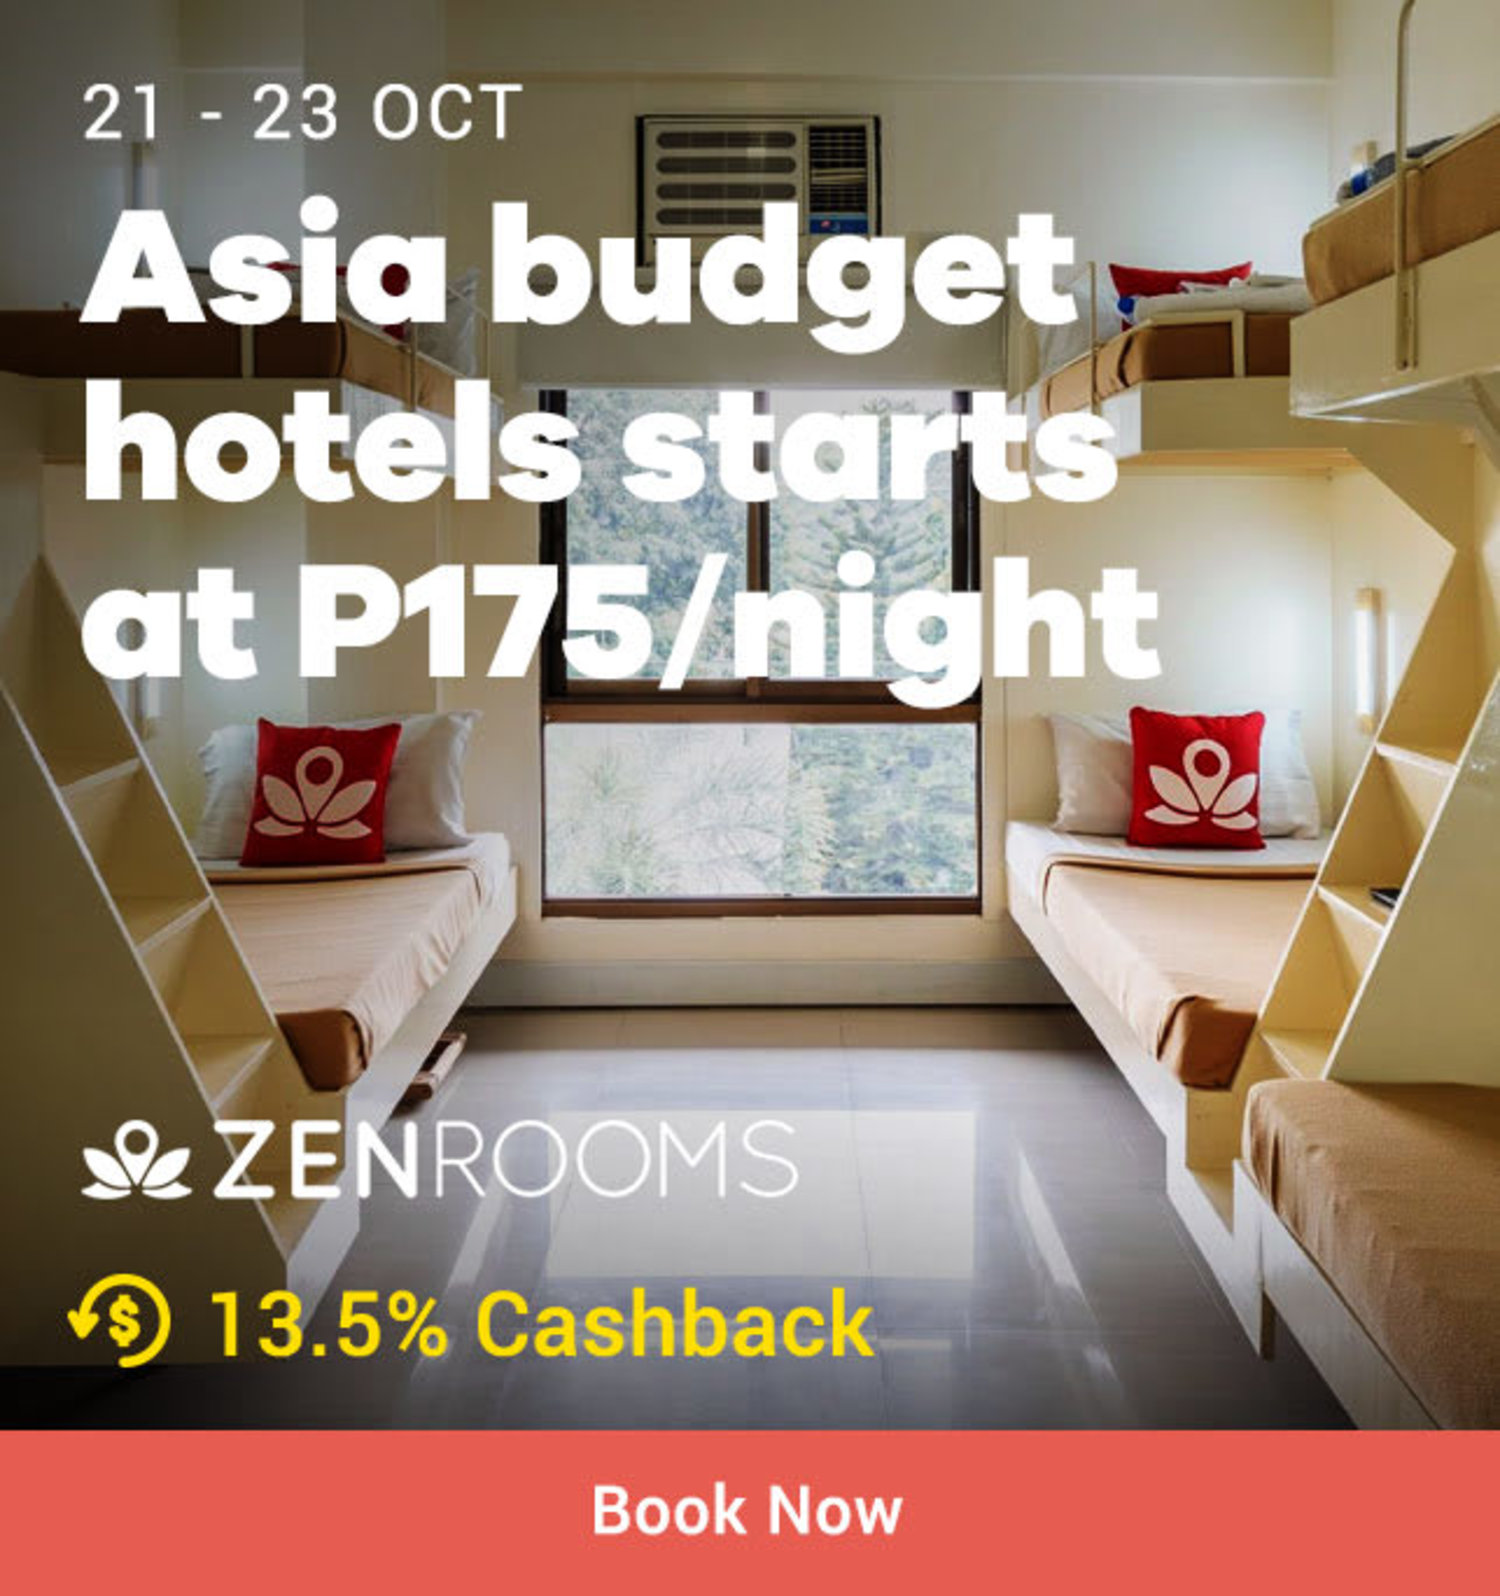 Zenrooms Voucher: Asia Budget Hotels starts at P175/ night